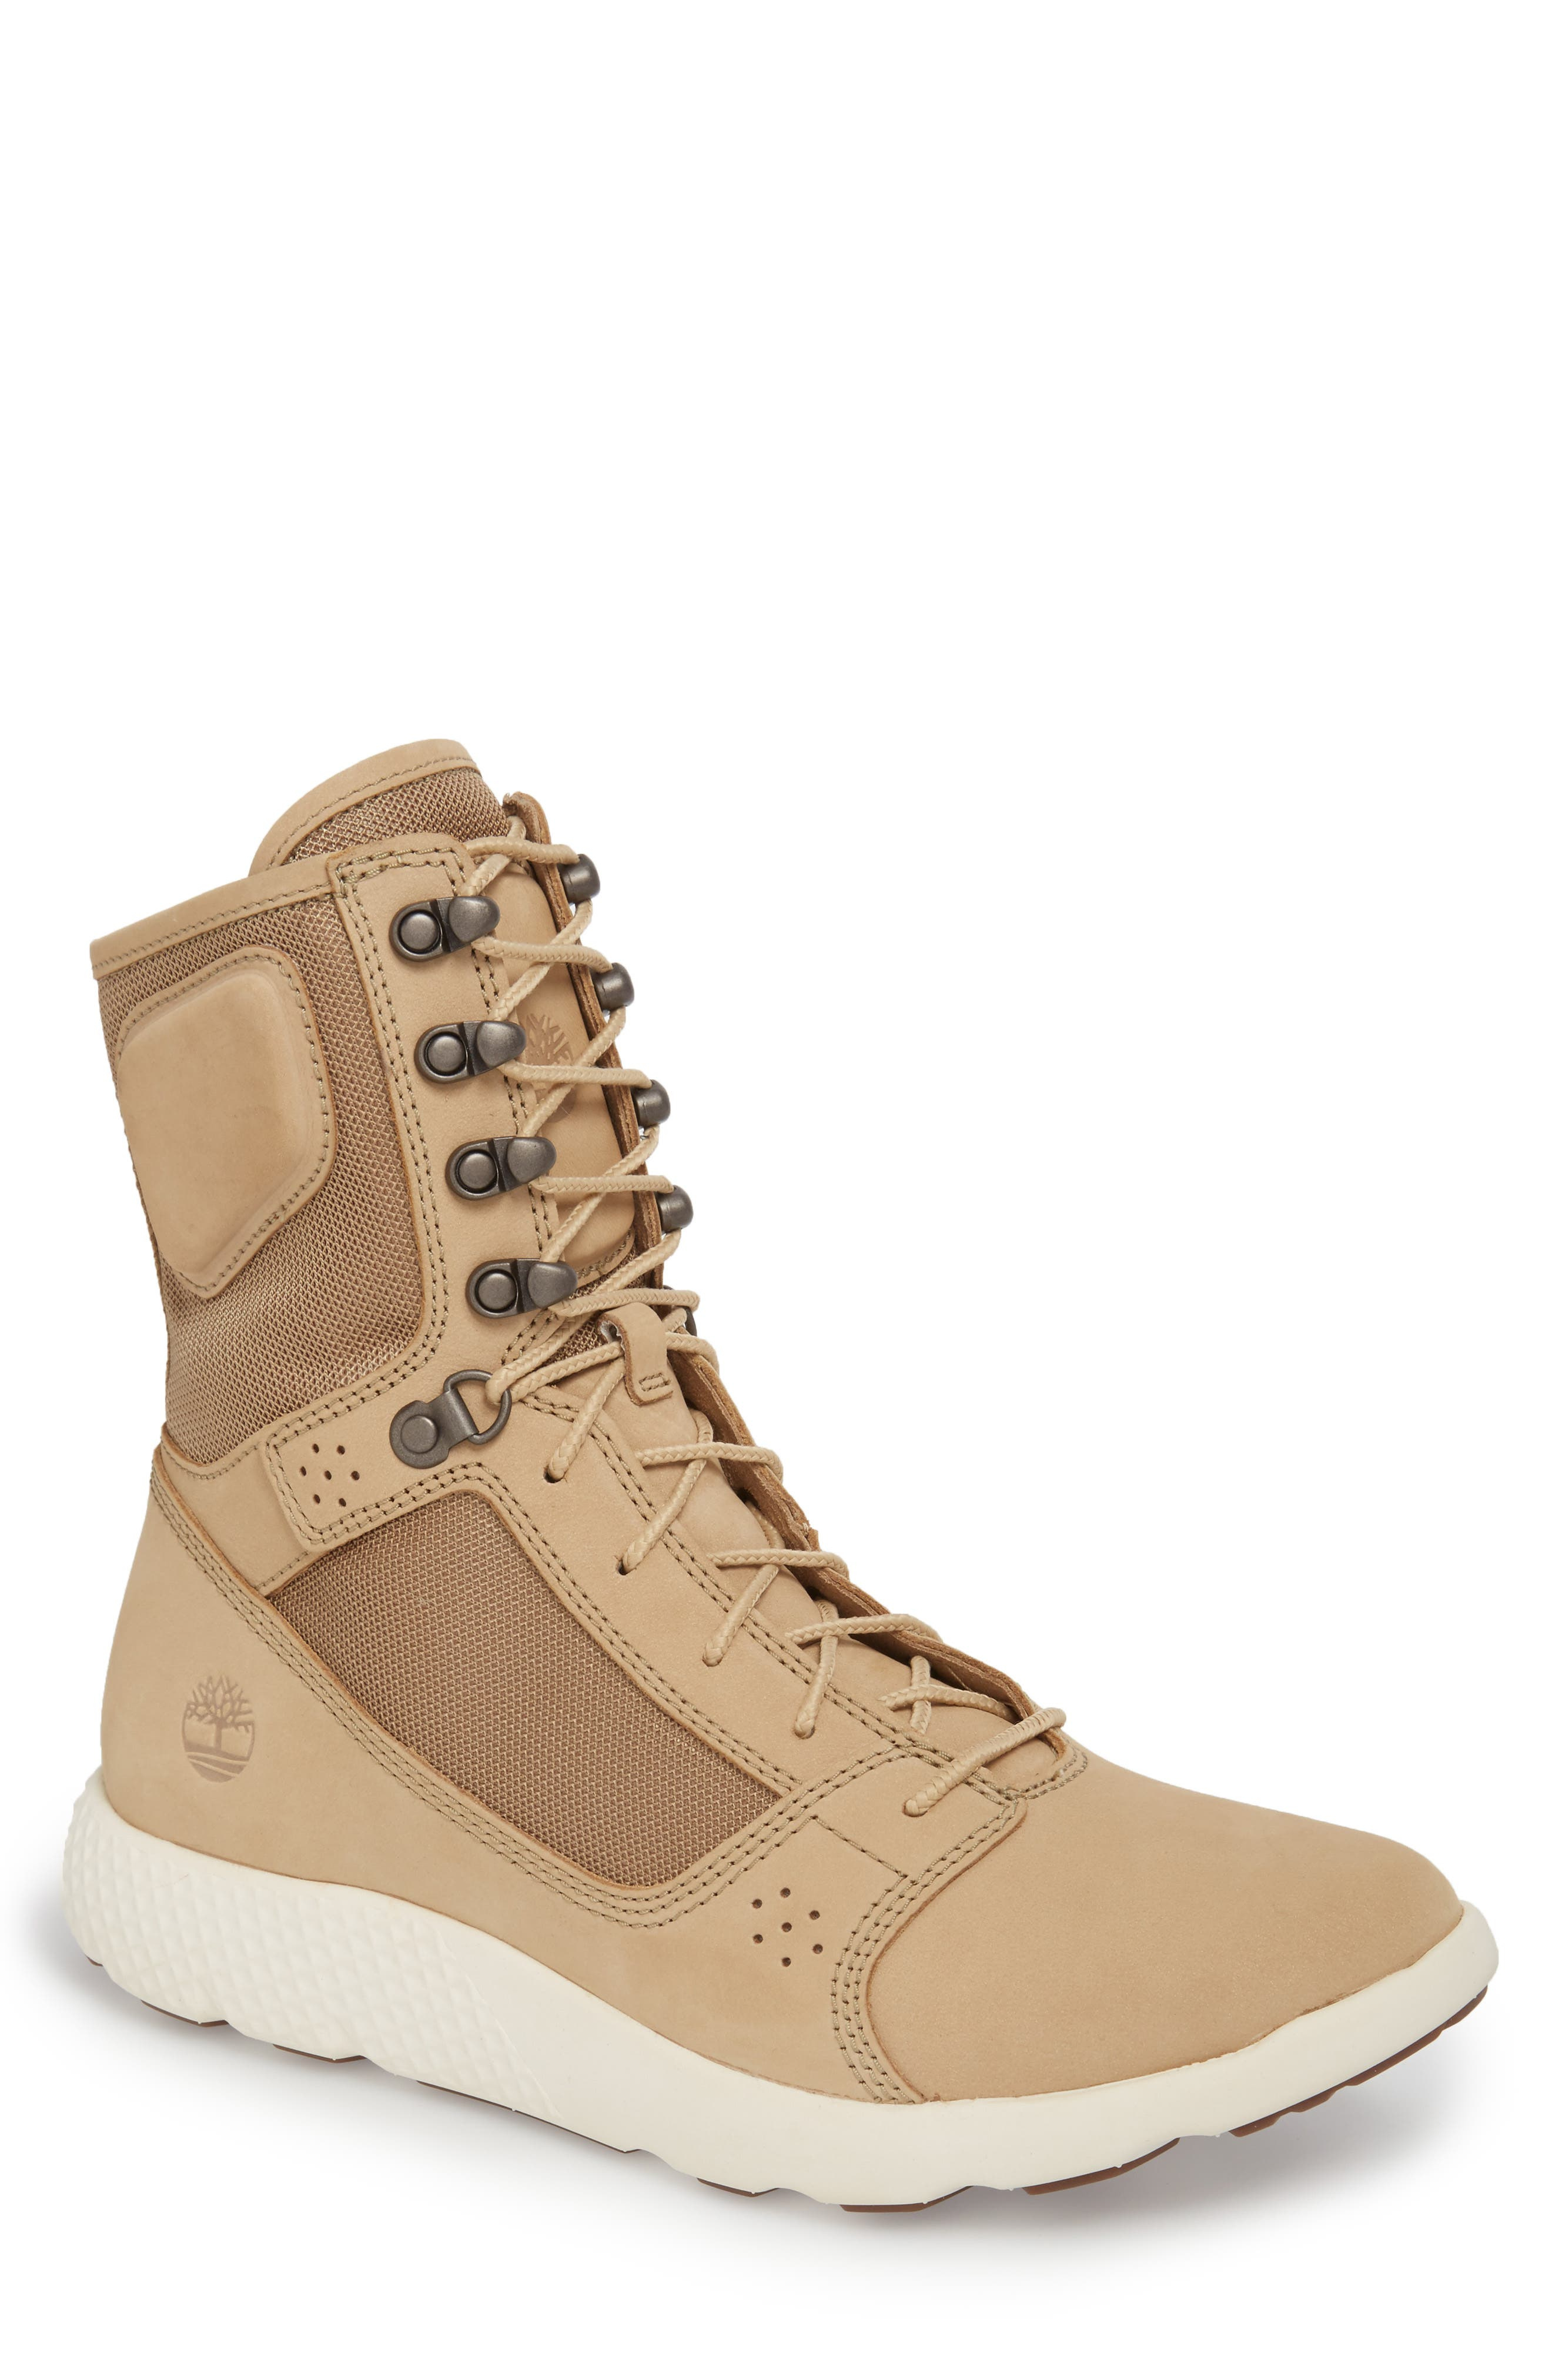 FlyRoam Tactical Boot,                         Main,                         color, Cornstalk Nubuck Leather